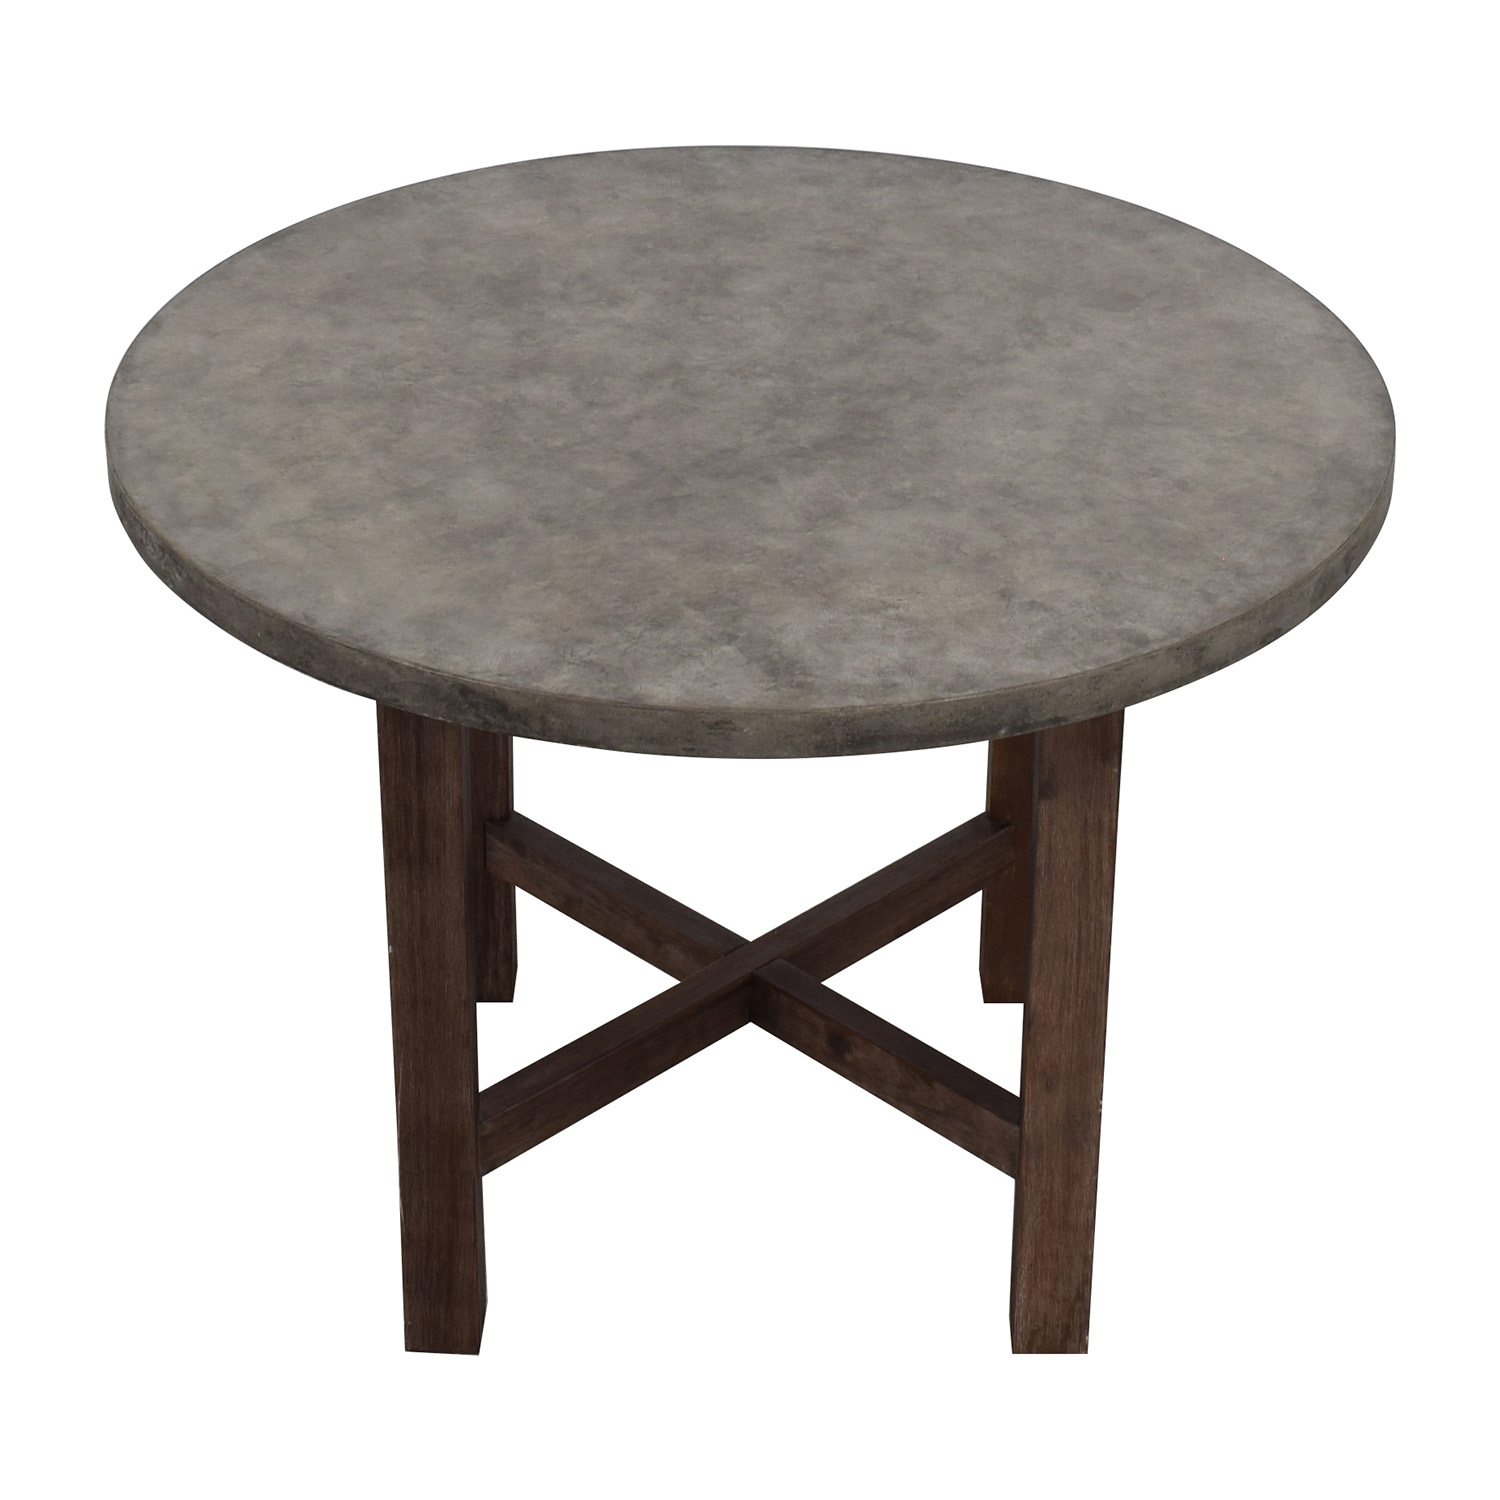 Round Grey Stone Dining Table